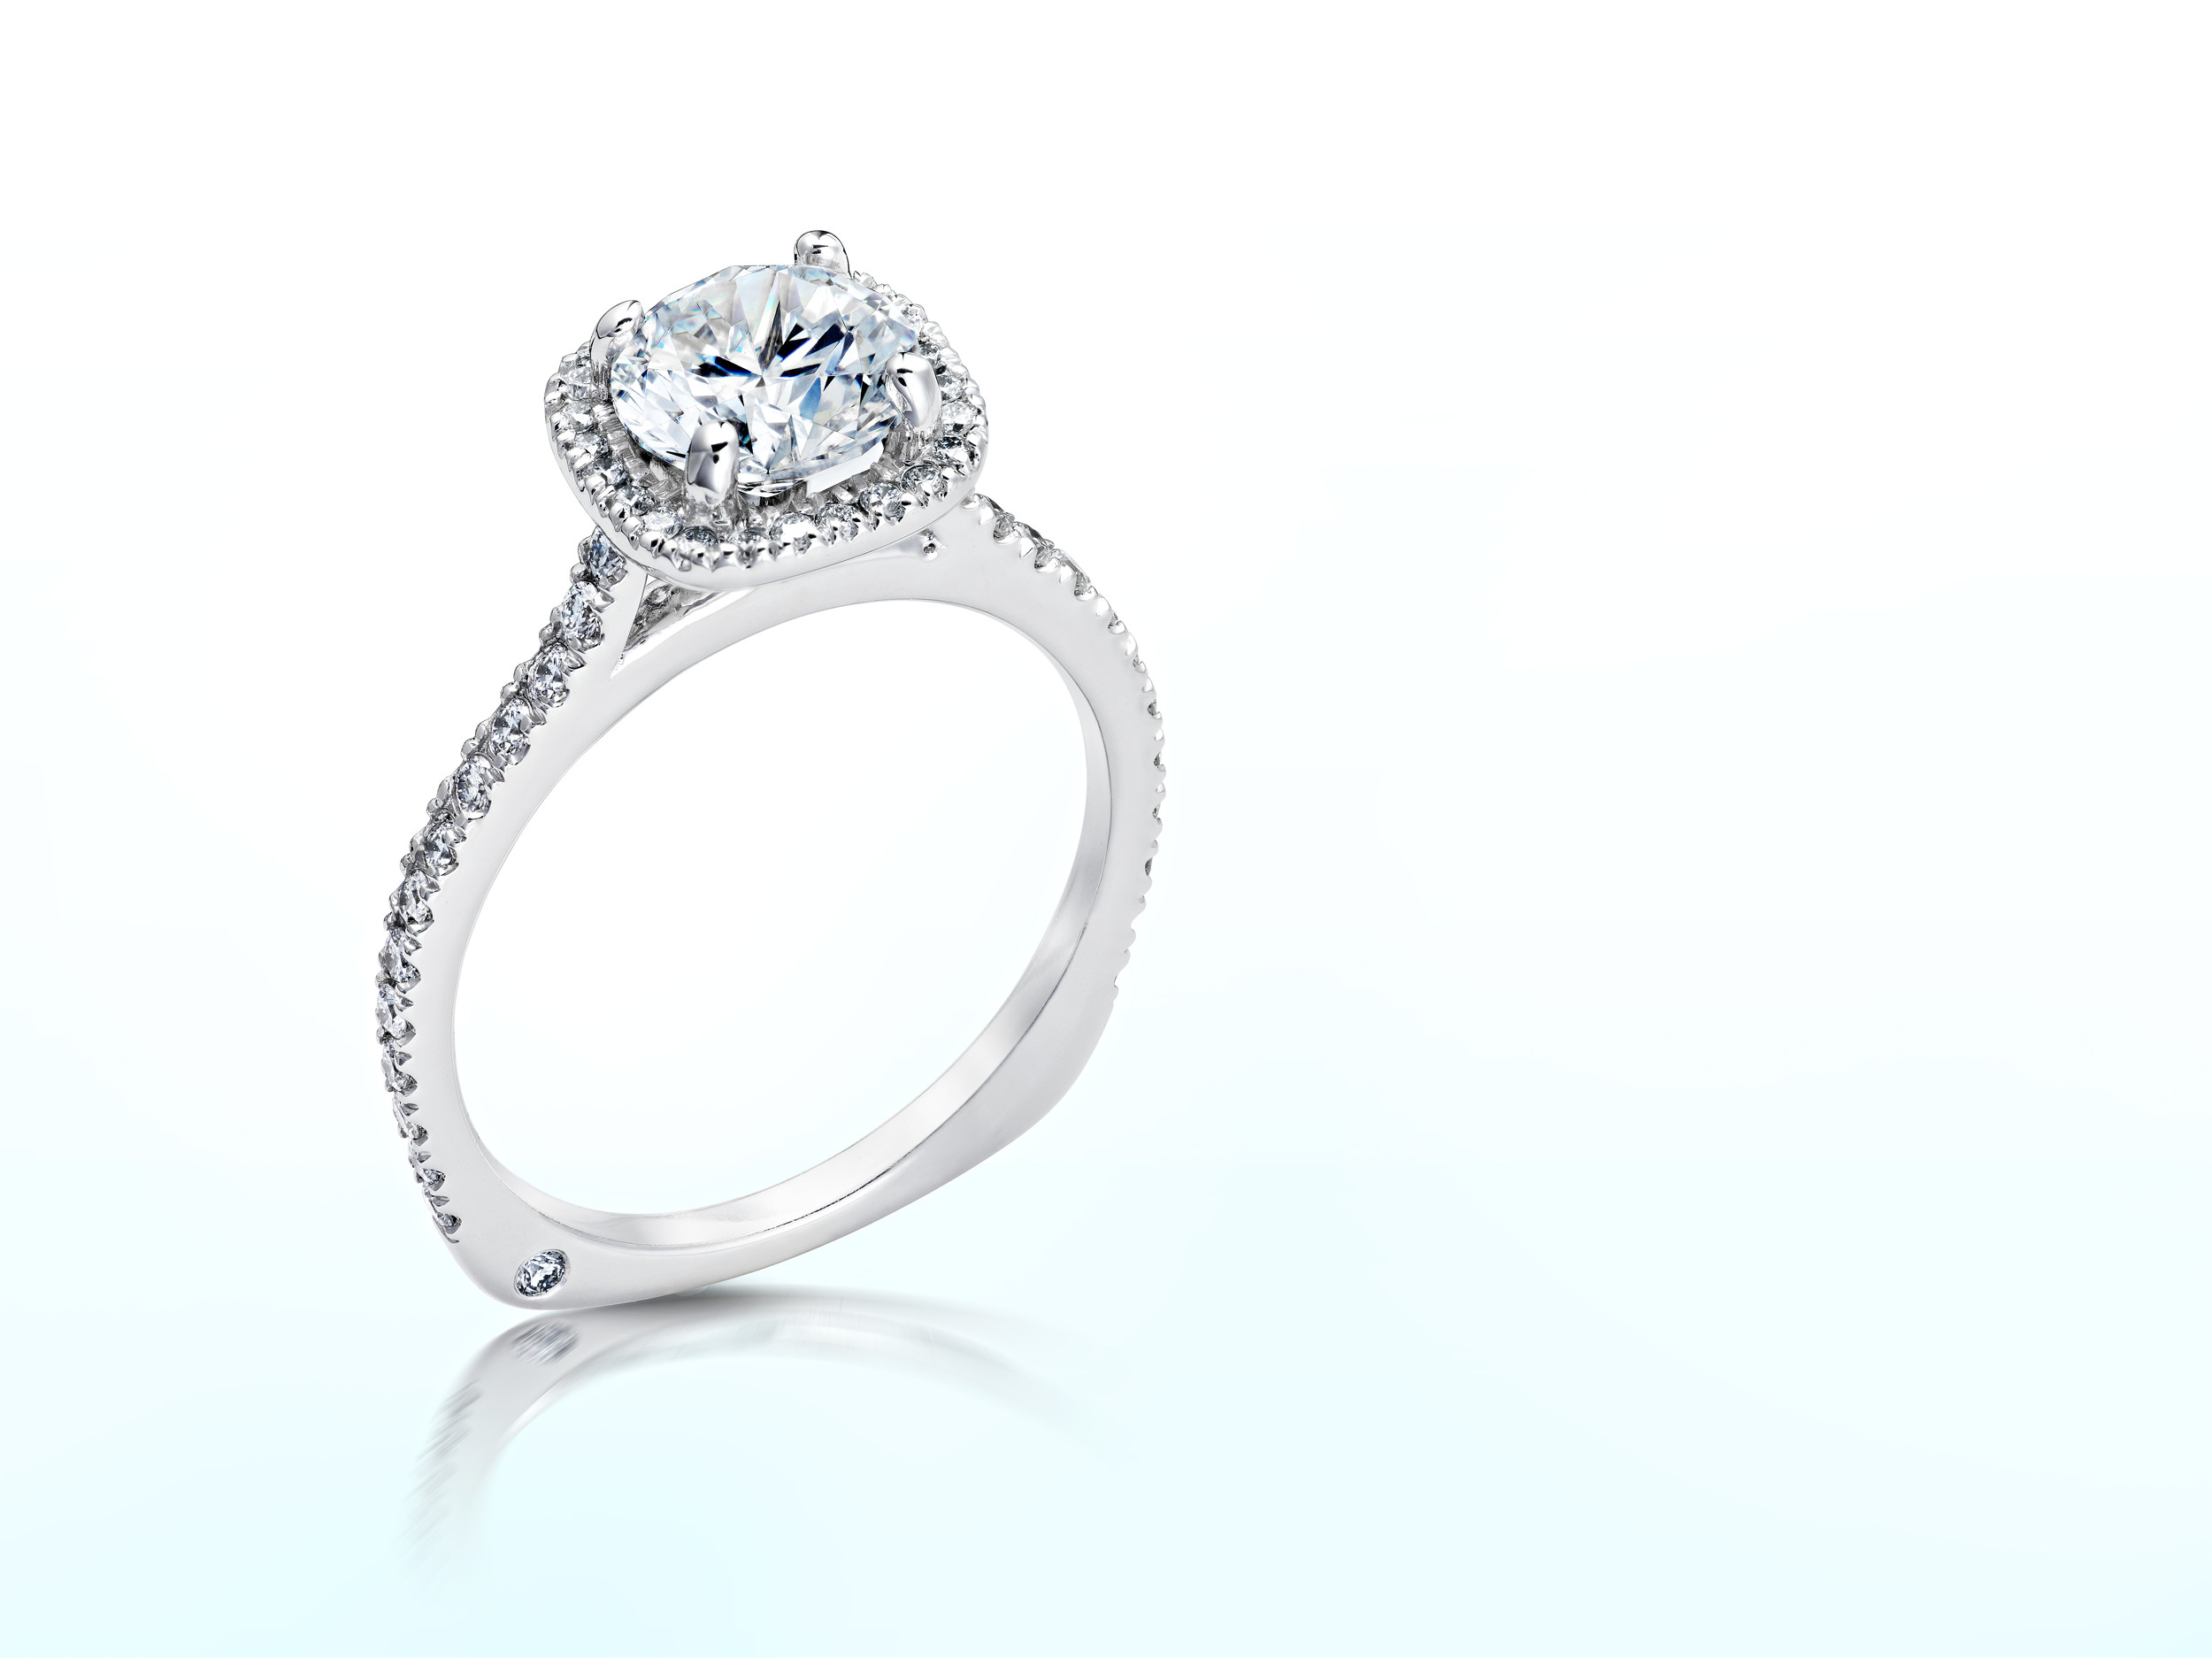 DIAMOND RING | JEWELRY DESIGN CENTER